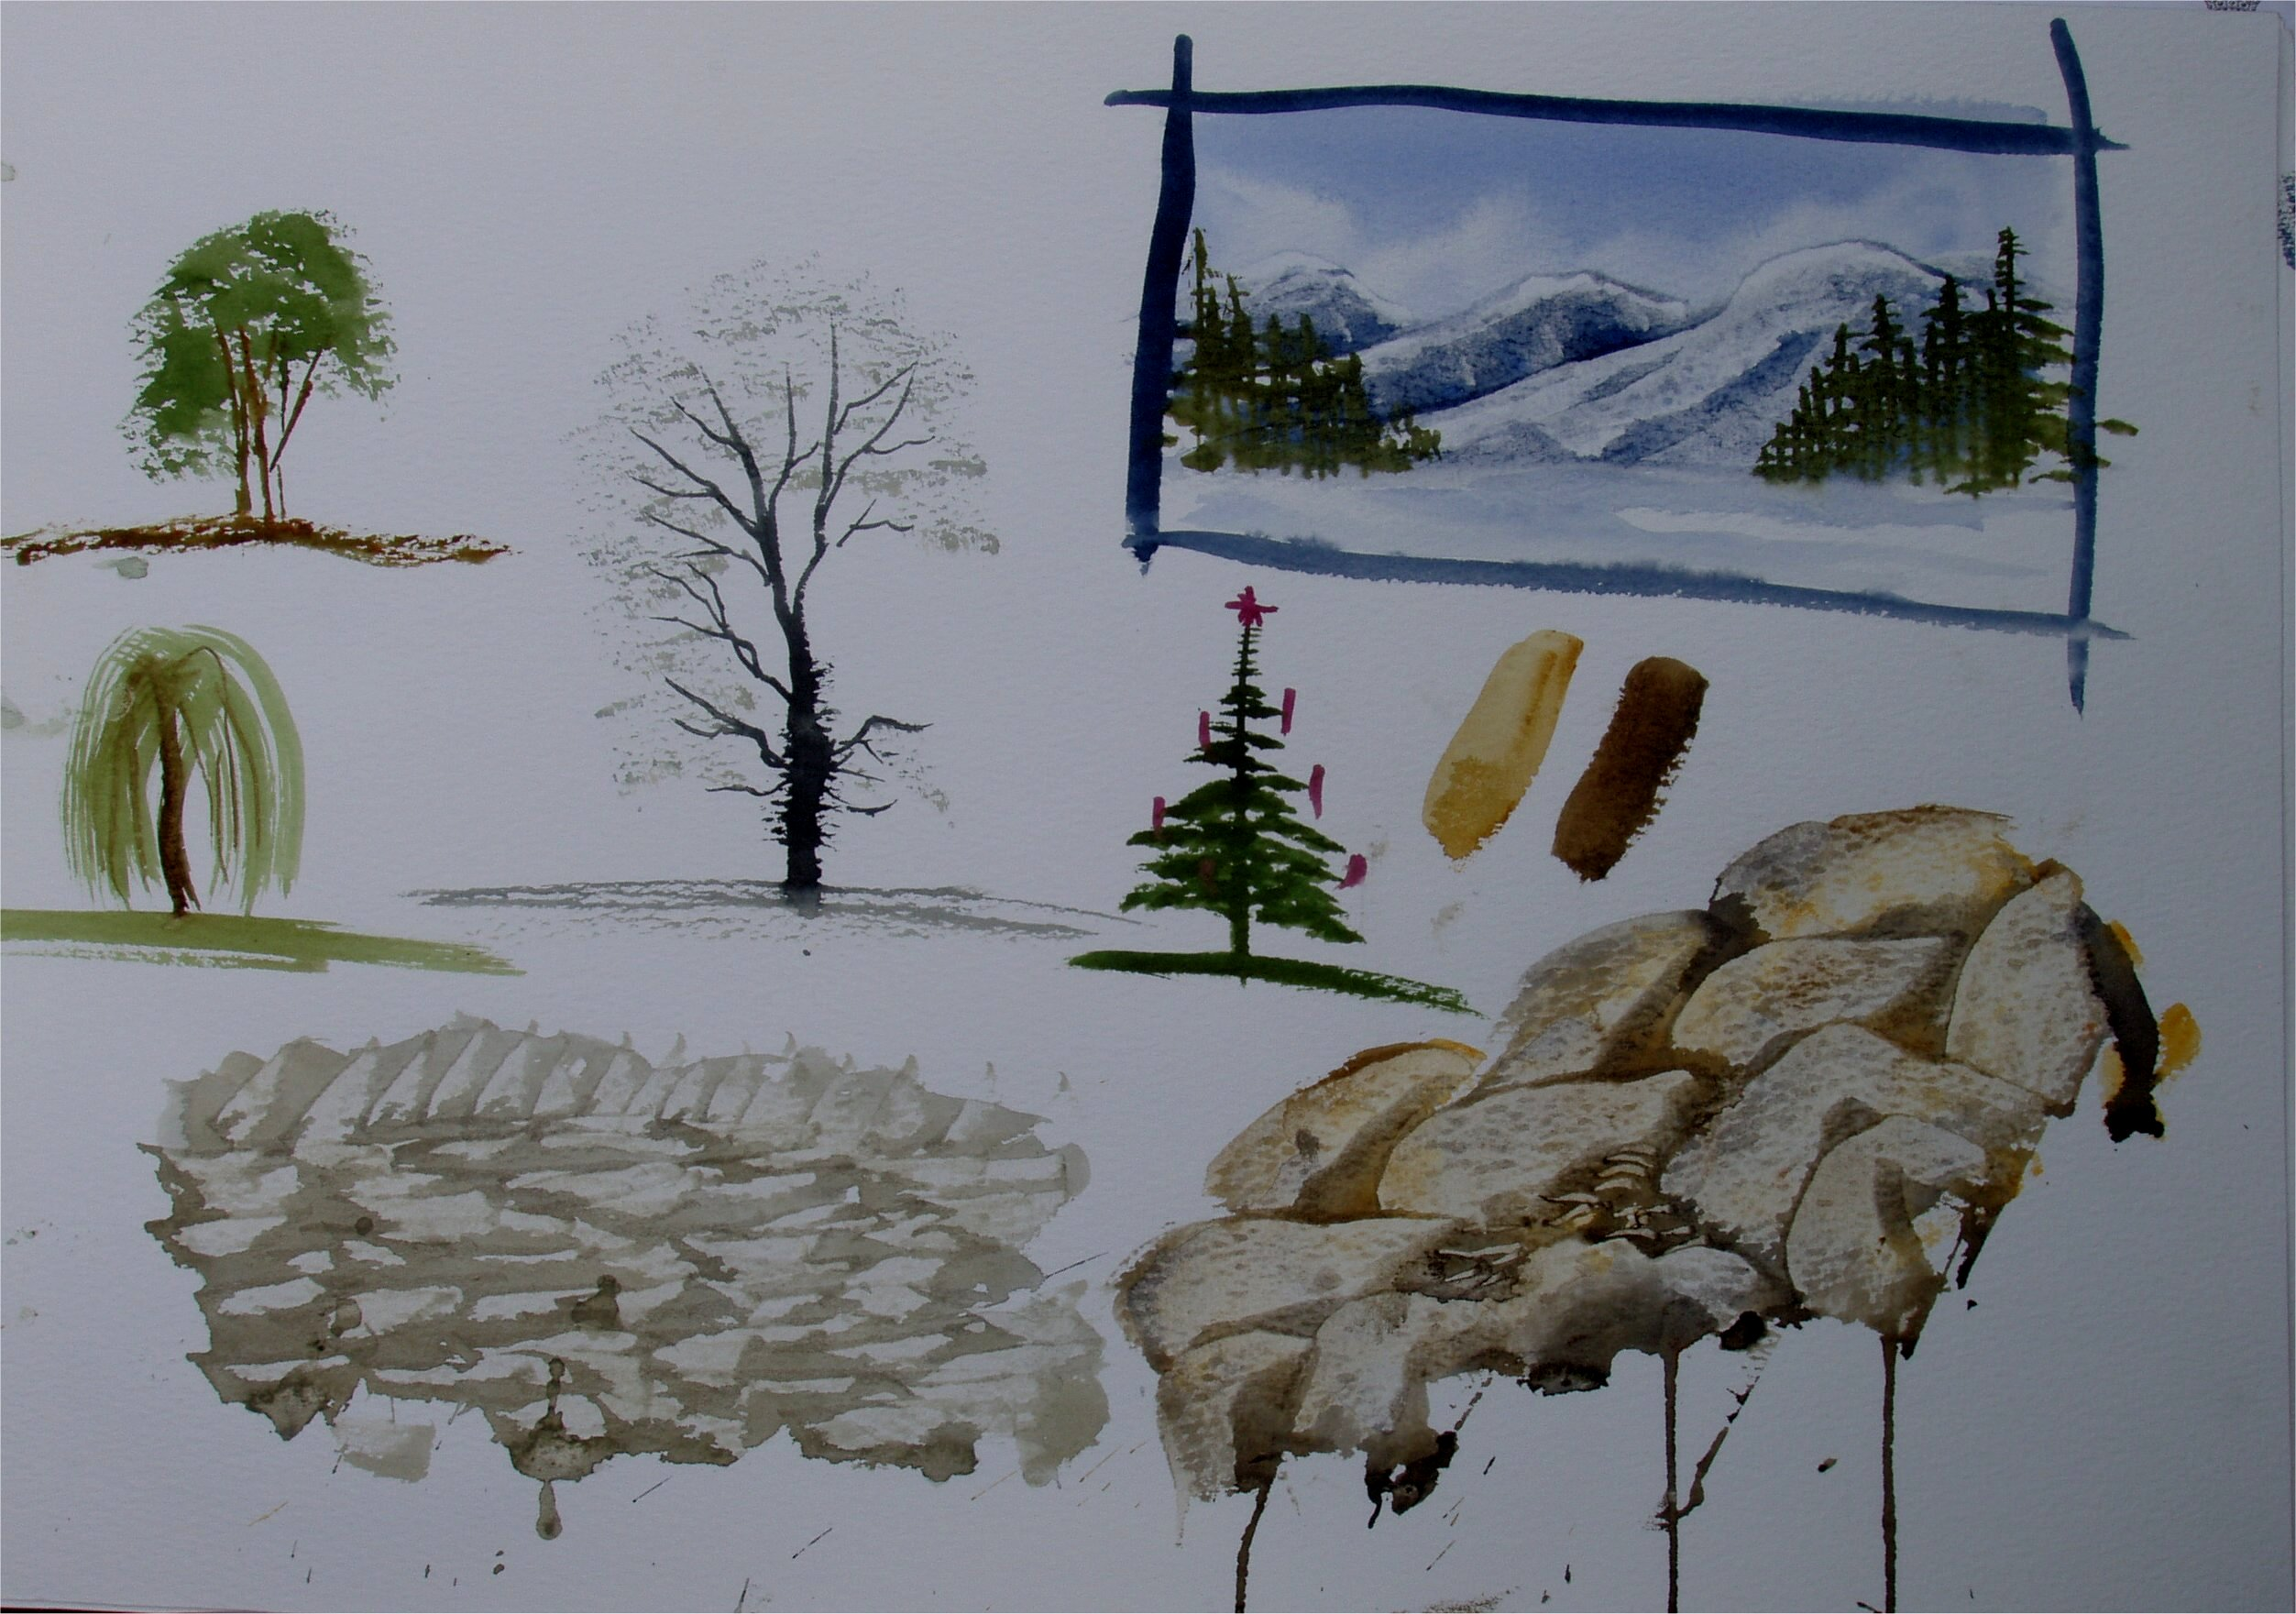 How to paint trees, rocks and mountains